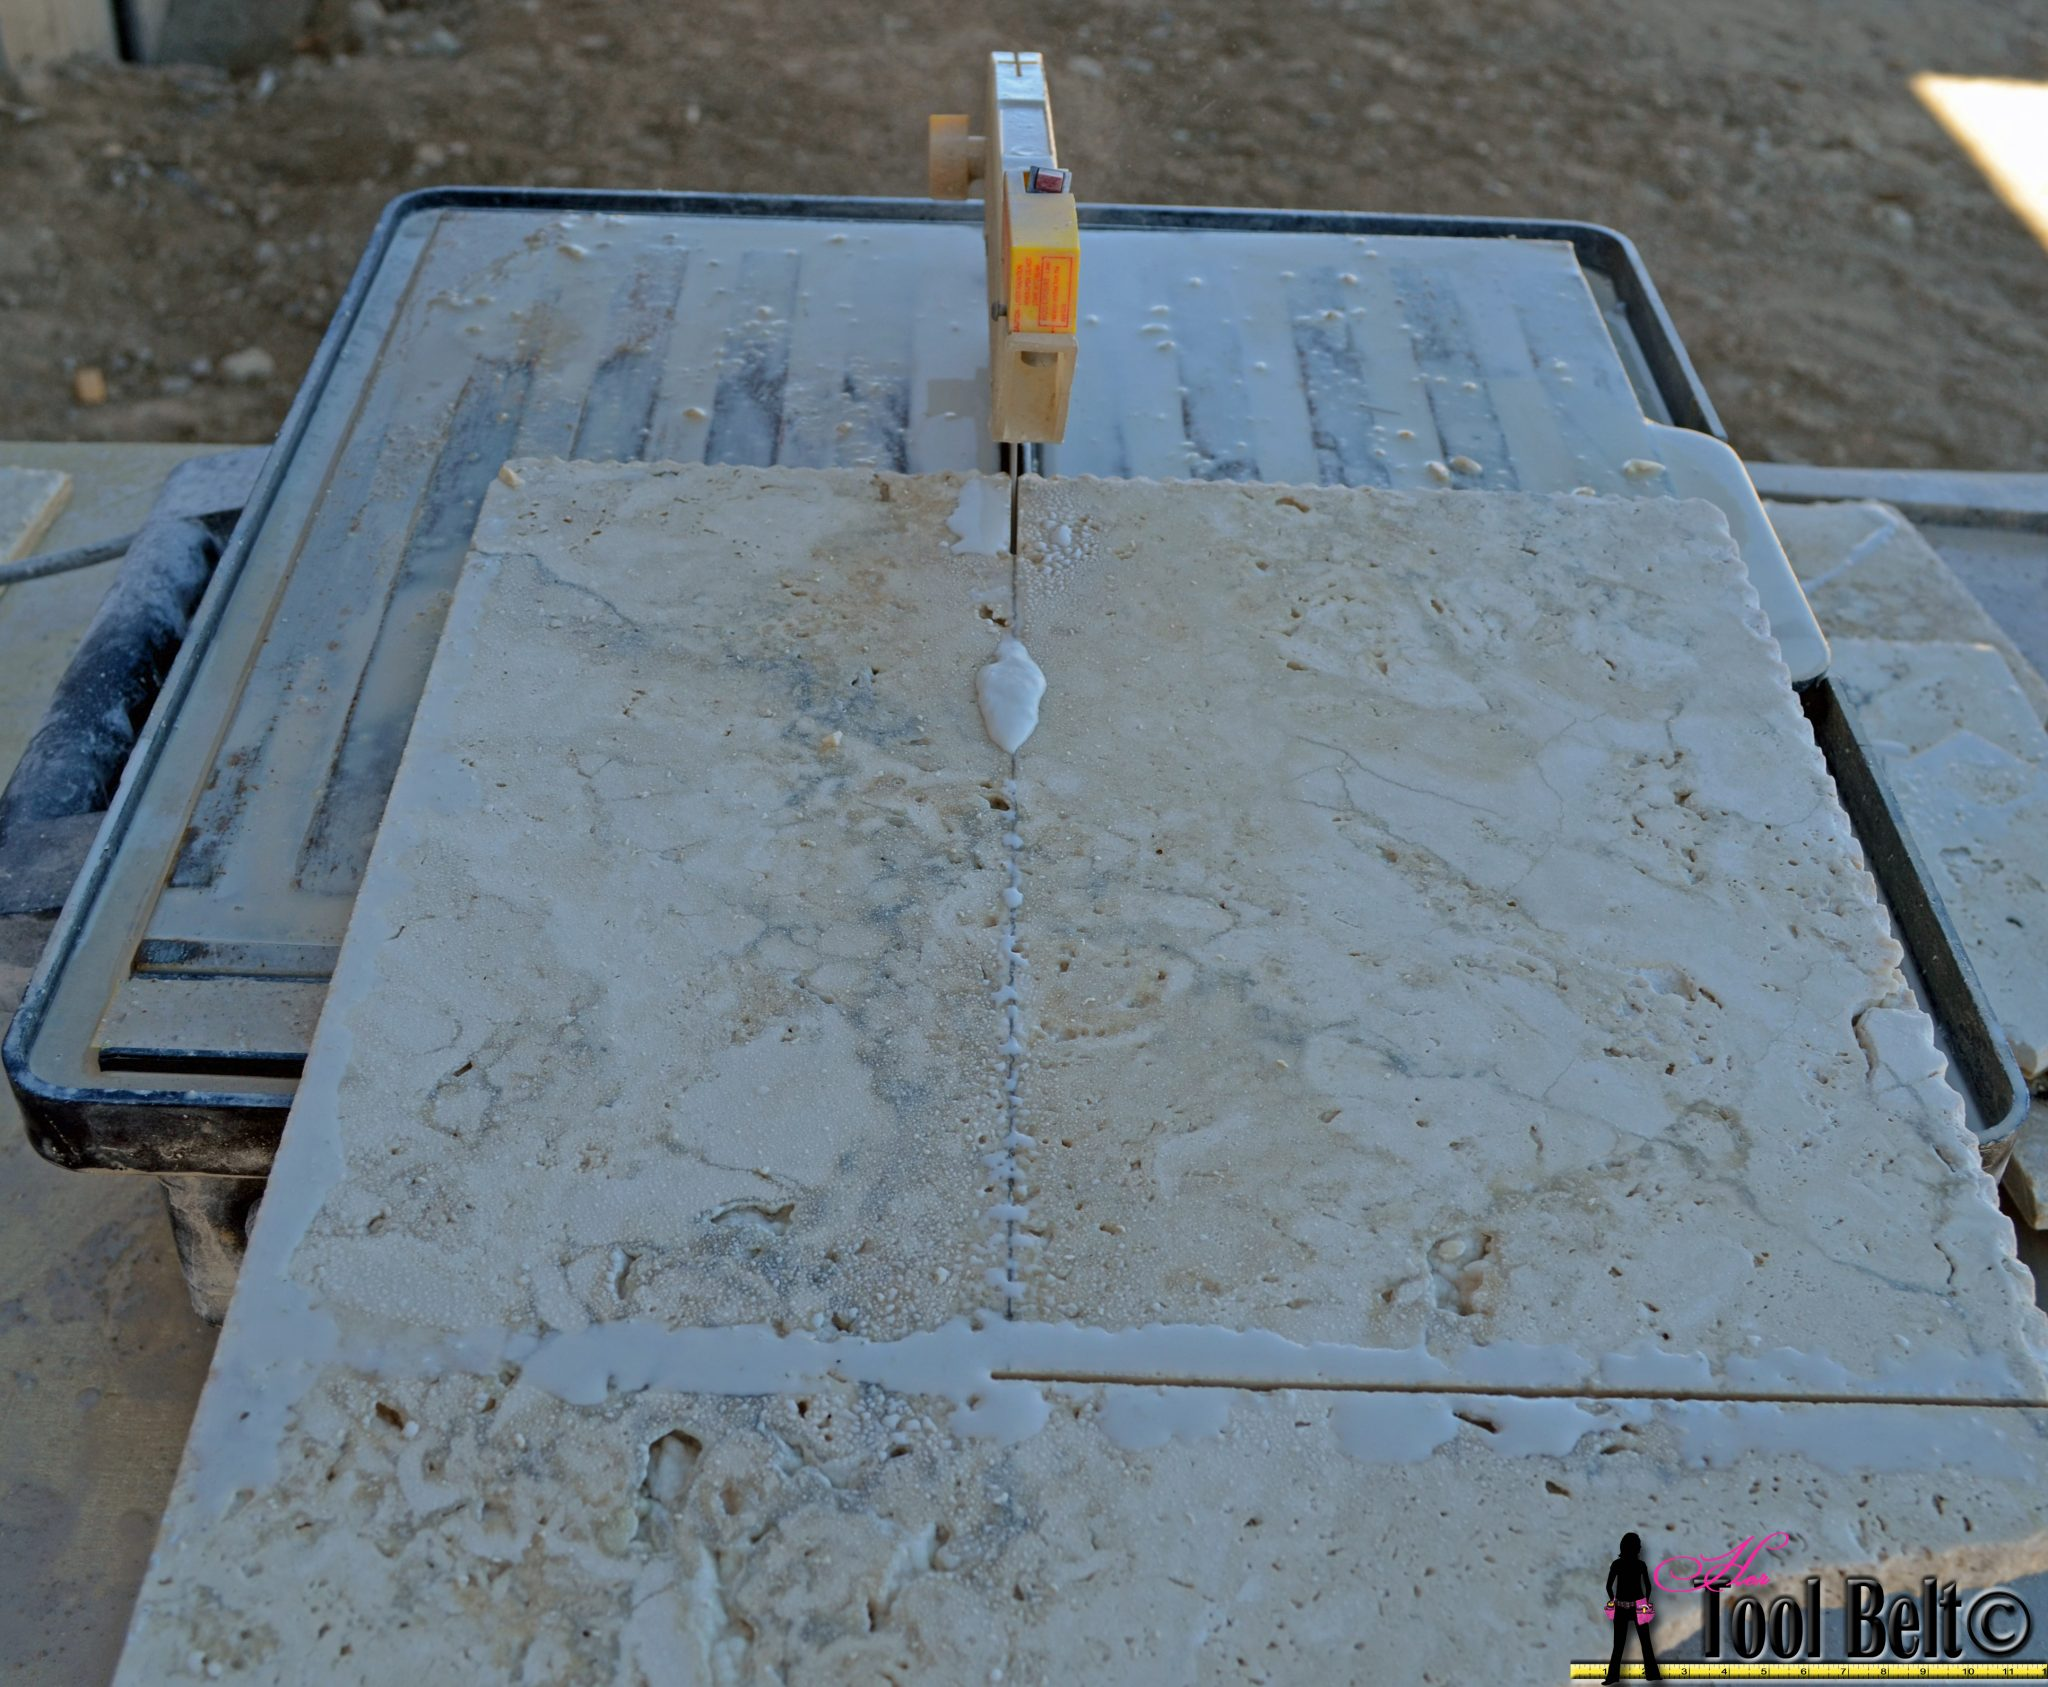 Travertine versailles pattern tile tutorial her tool belt always wear safety glasses when cutting tile measure and mark on the tile with pencil where to make your cut gently feed the tile into the tile saw blade greentooth Image collections